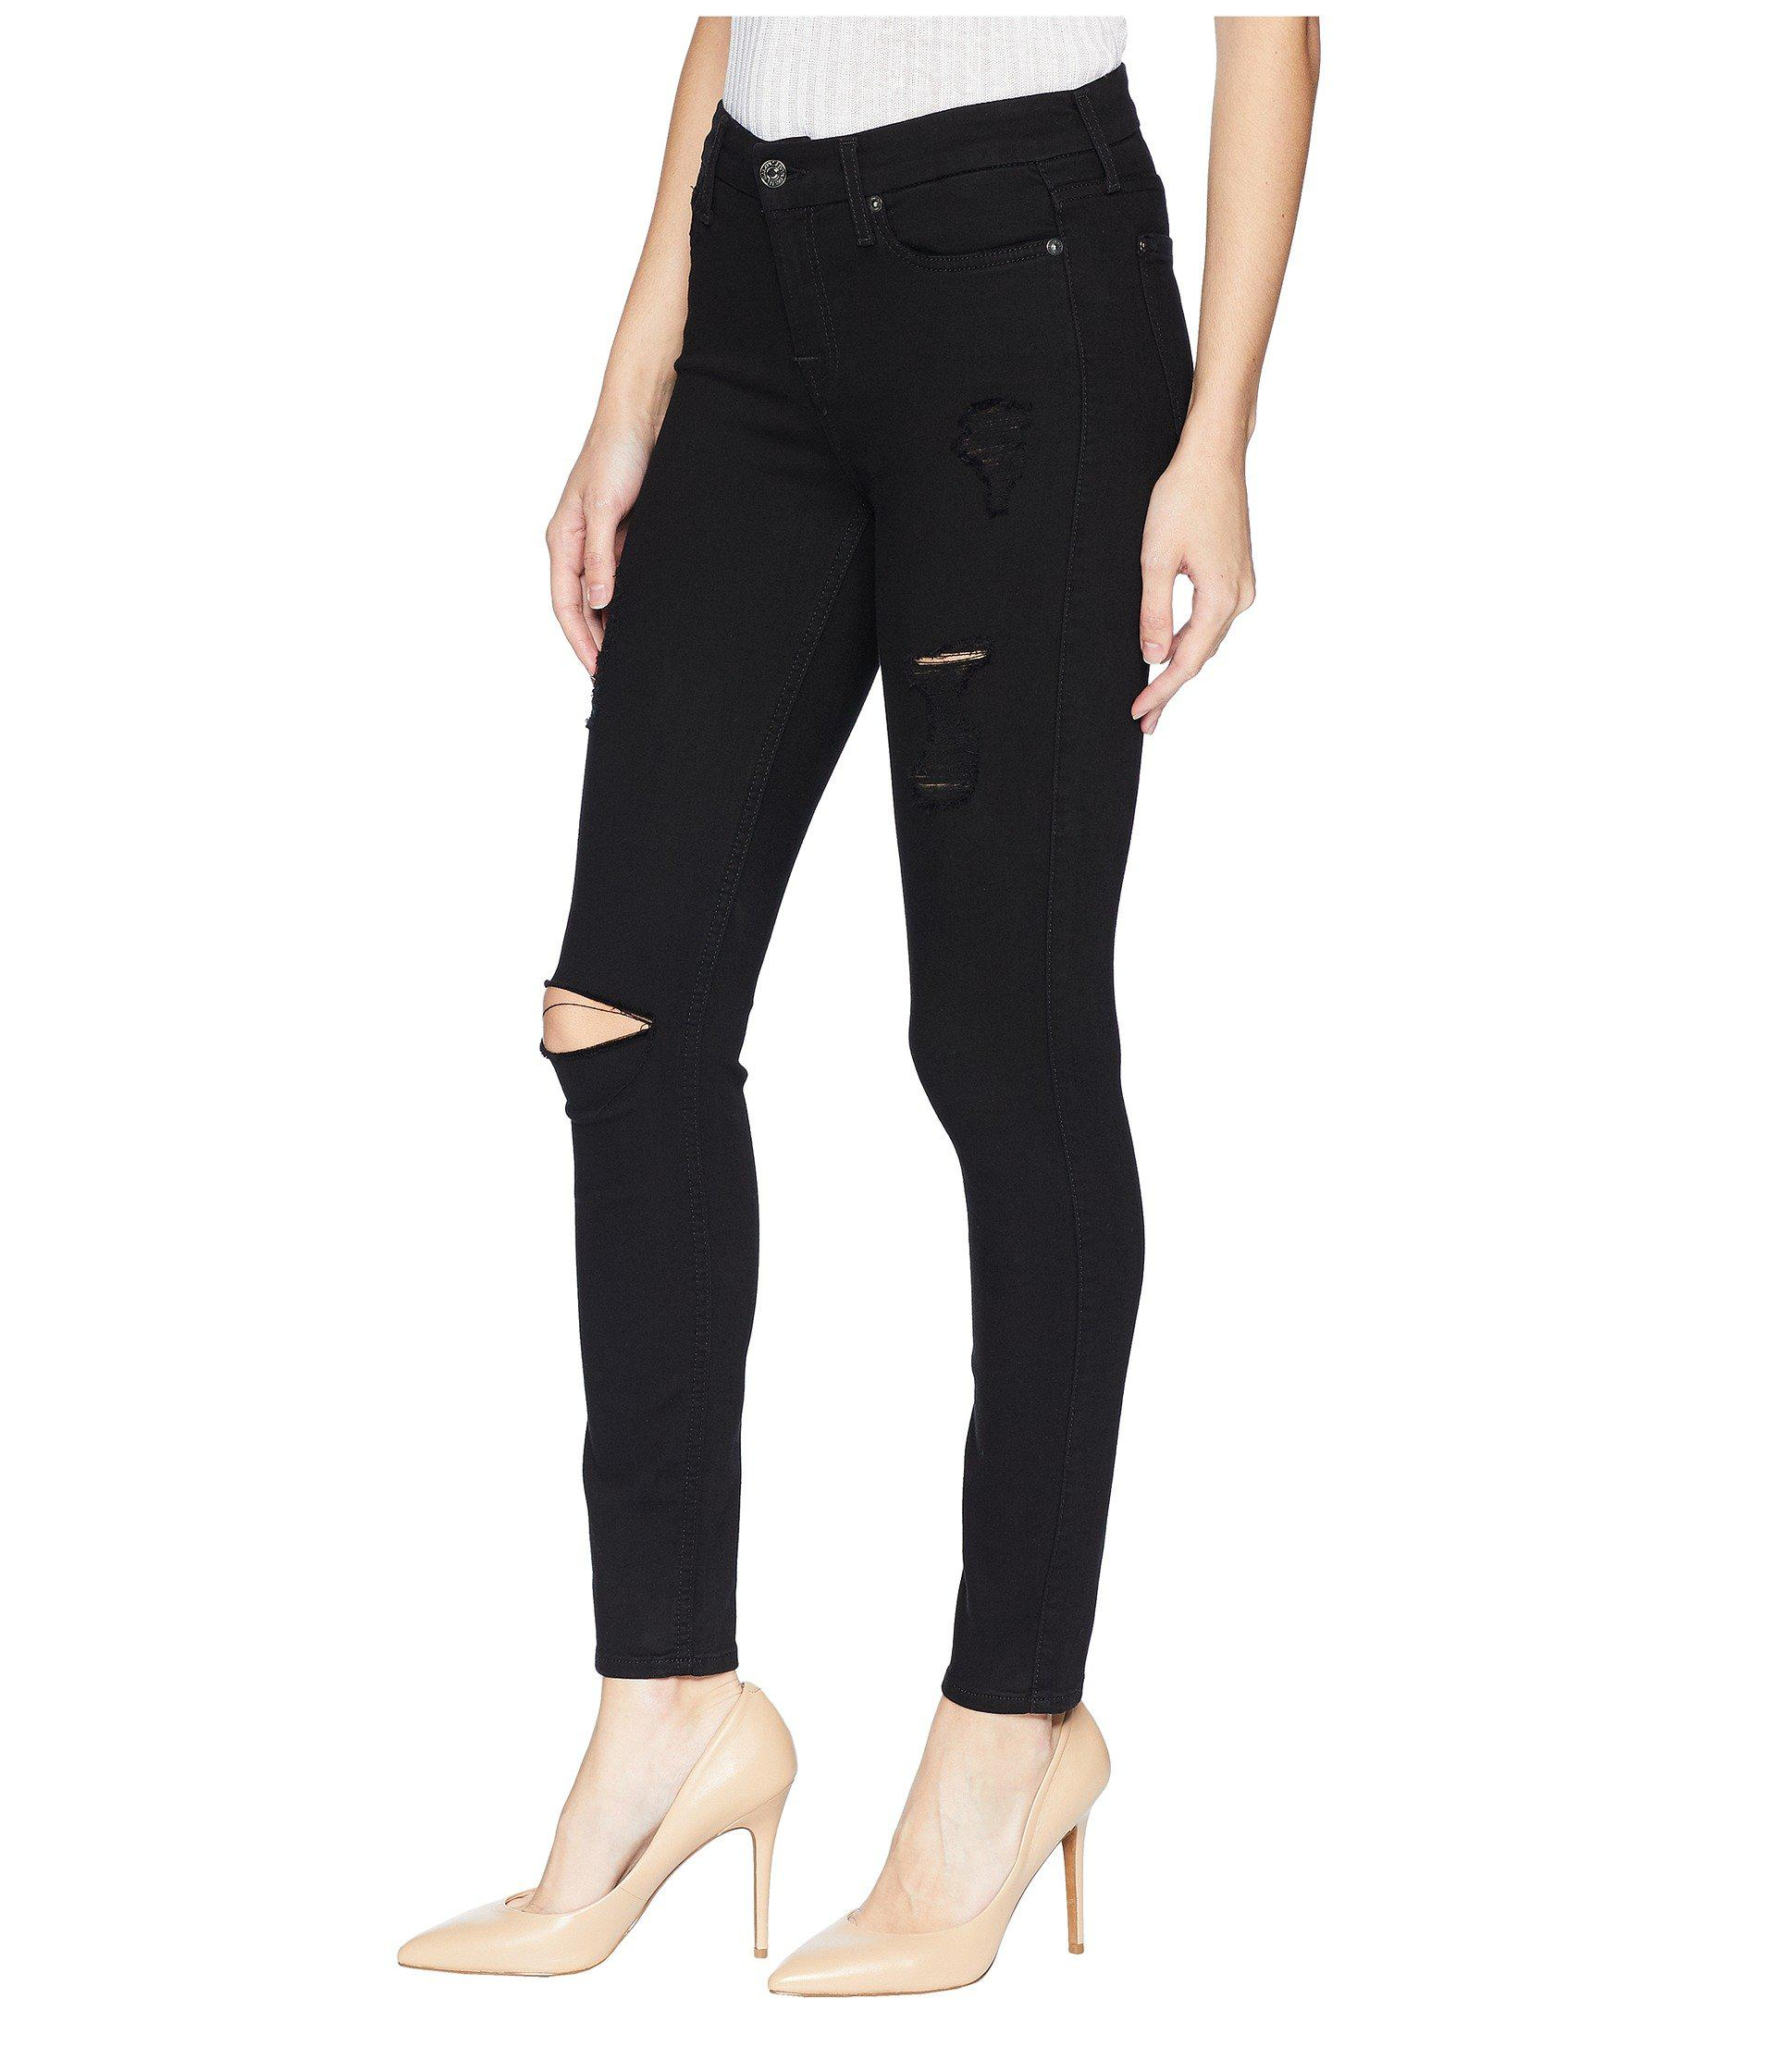 size 40 2c524 d1292 Lyst - 7 For All Mankind B(air) Ankle Skinny With Destroy In Black 3 (black  3) Women s Jeans in Black